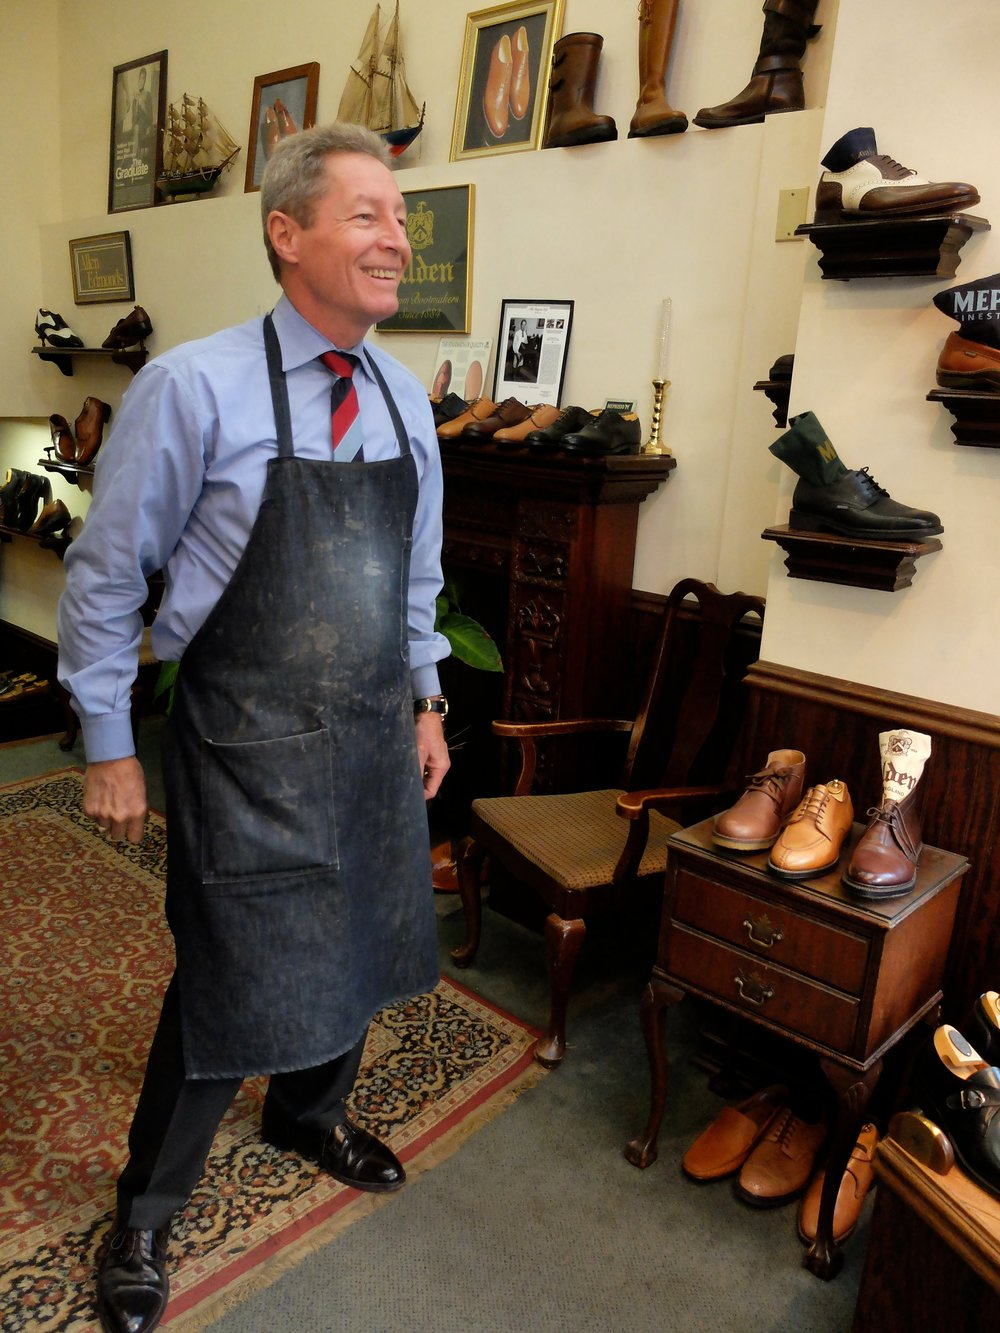 Paul Moorefield - quite a raconteur.  We could have listened to his stories for hours.  His uncle is a 104 y.o. retired dentist.  Oliver Moore Bootmakers - J.S. Elias Inc. Only $3,000/pair.